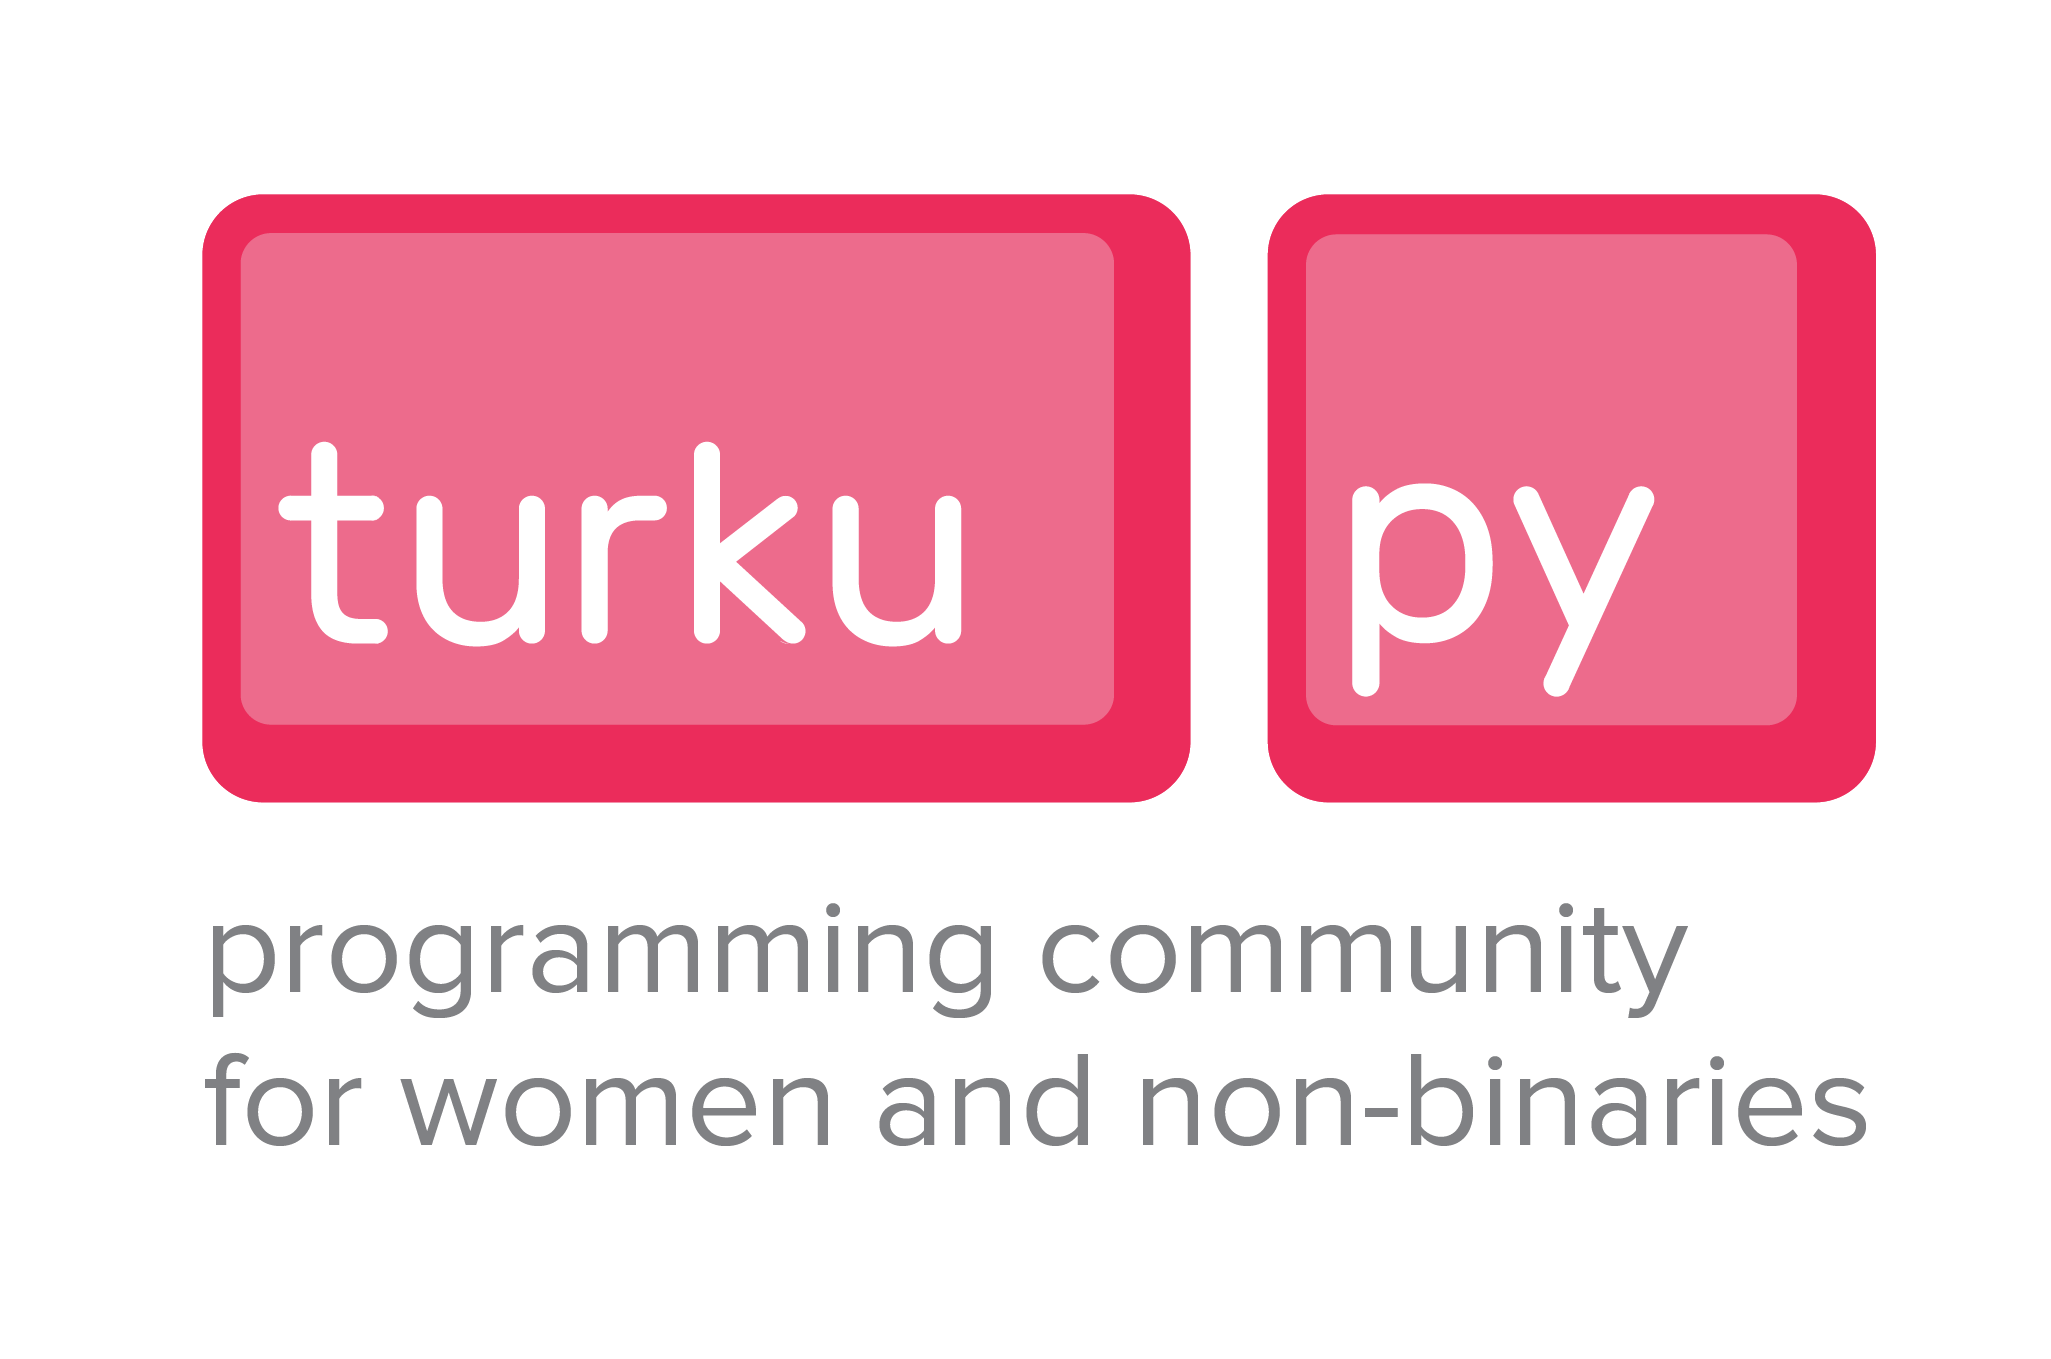 Turku.py - programming community for women and nonbinaries